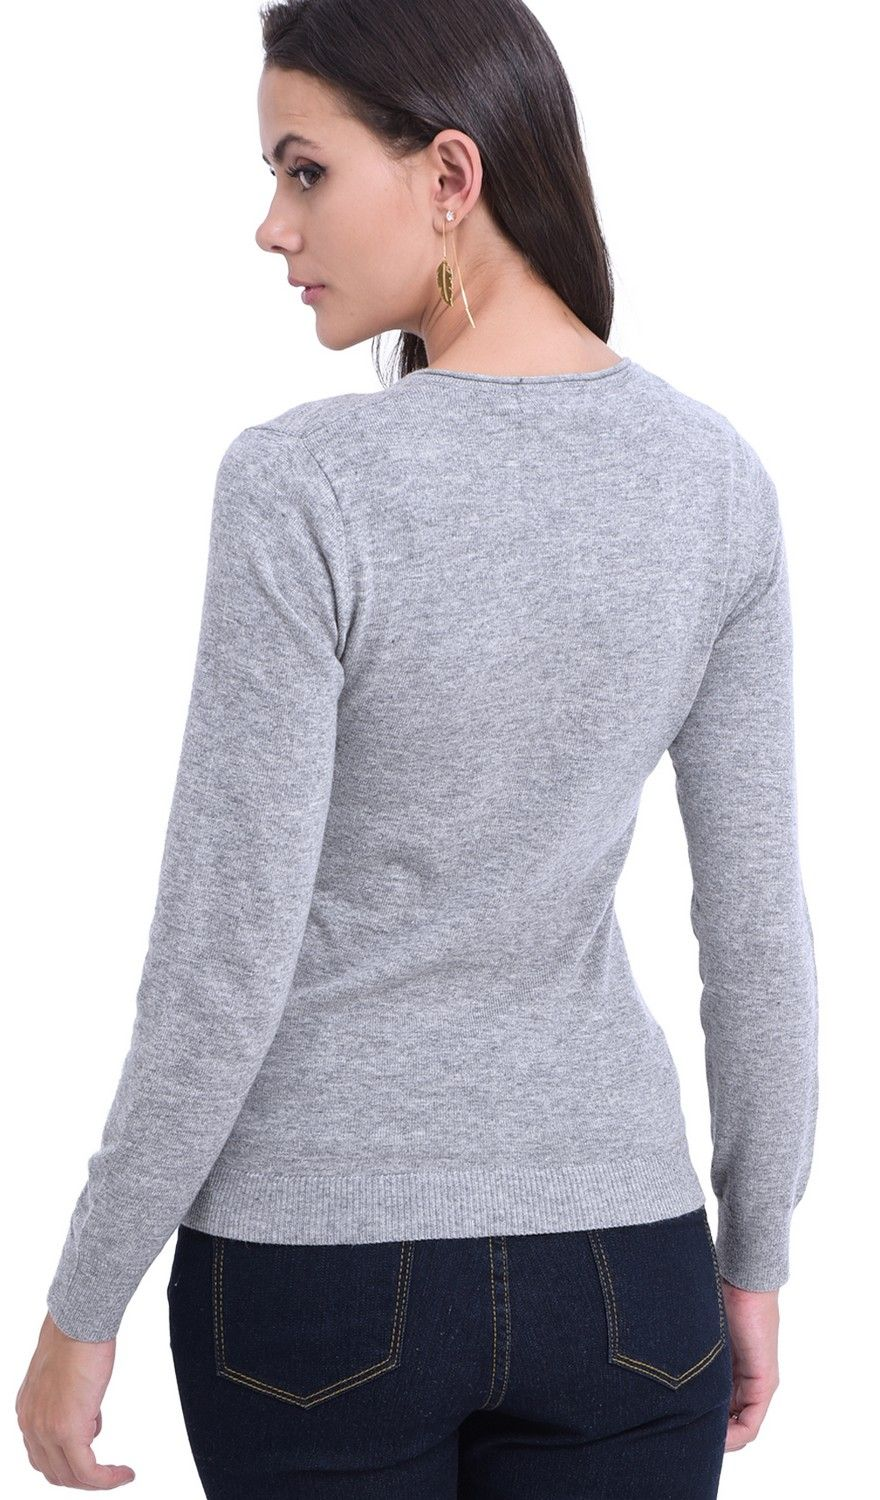 Assuili Tunisian Neck Sweater with Rolled Buttons in Light Grey